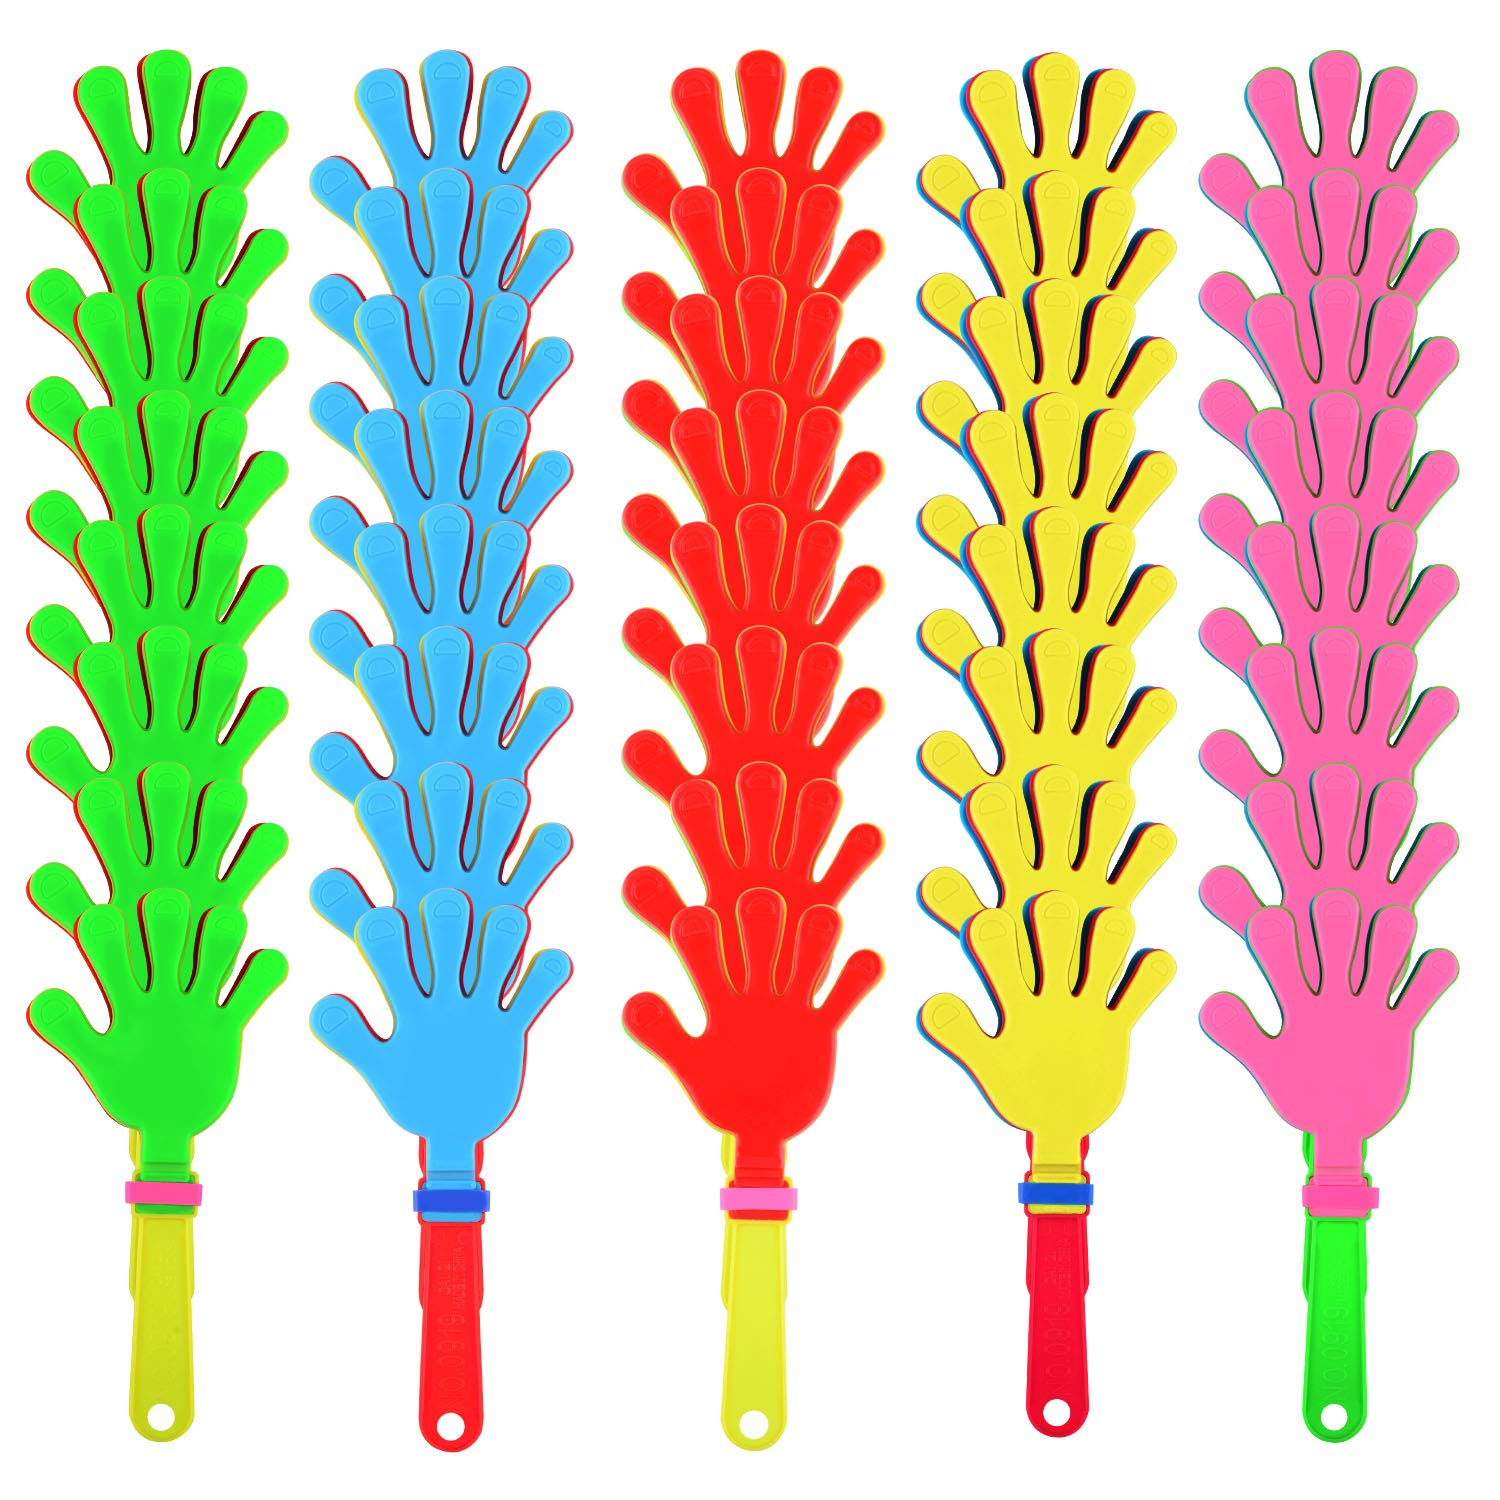 Sunshane 40 Pieces Plastic Hand Clappers Noise Makers Noisemaker Game Accessories for Fiesta Party Birthday Favors and Supplies, 7.5 Inch by Sunshane